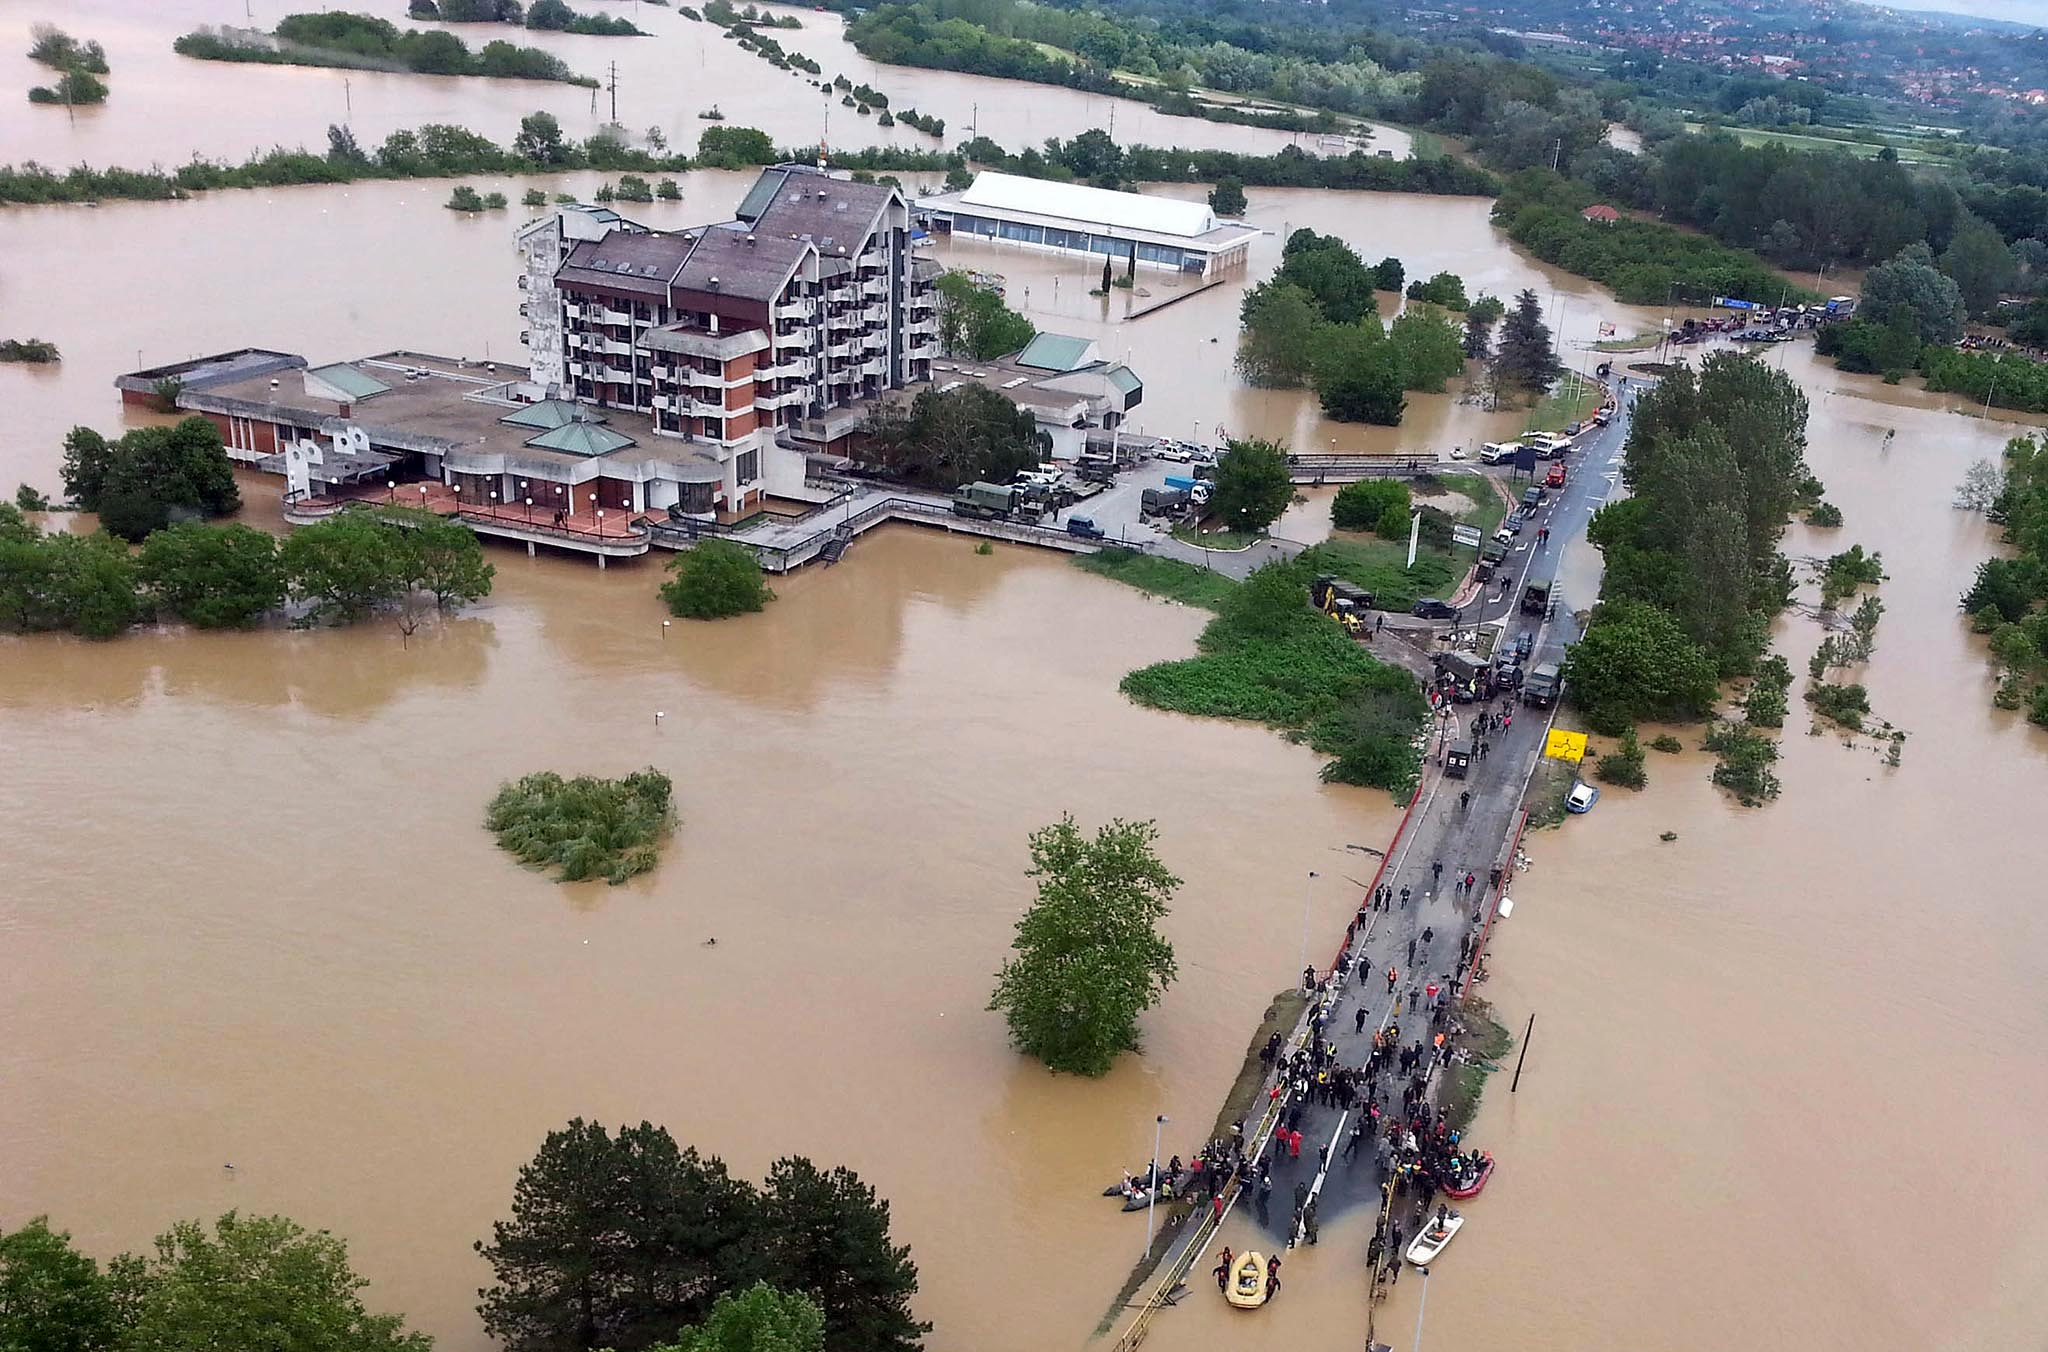 aerial view of the flooded city of Obrenovac,